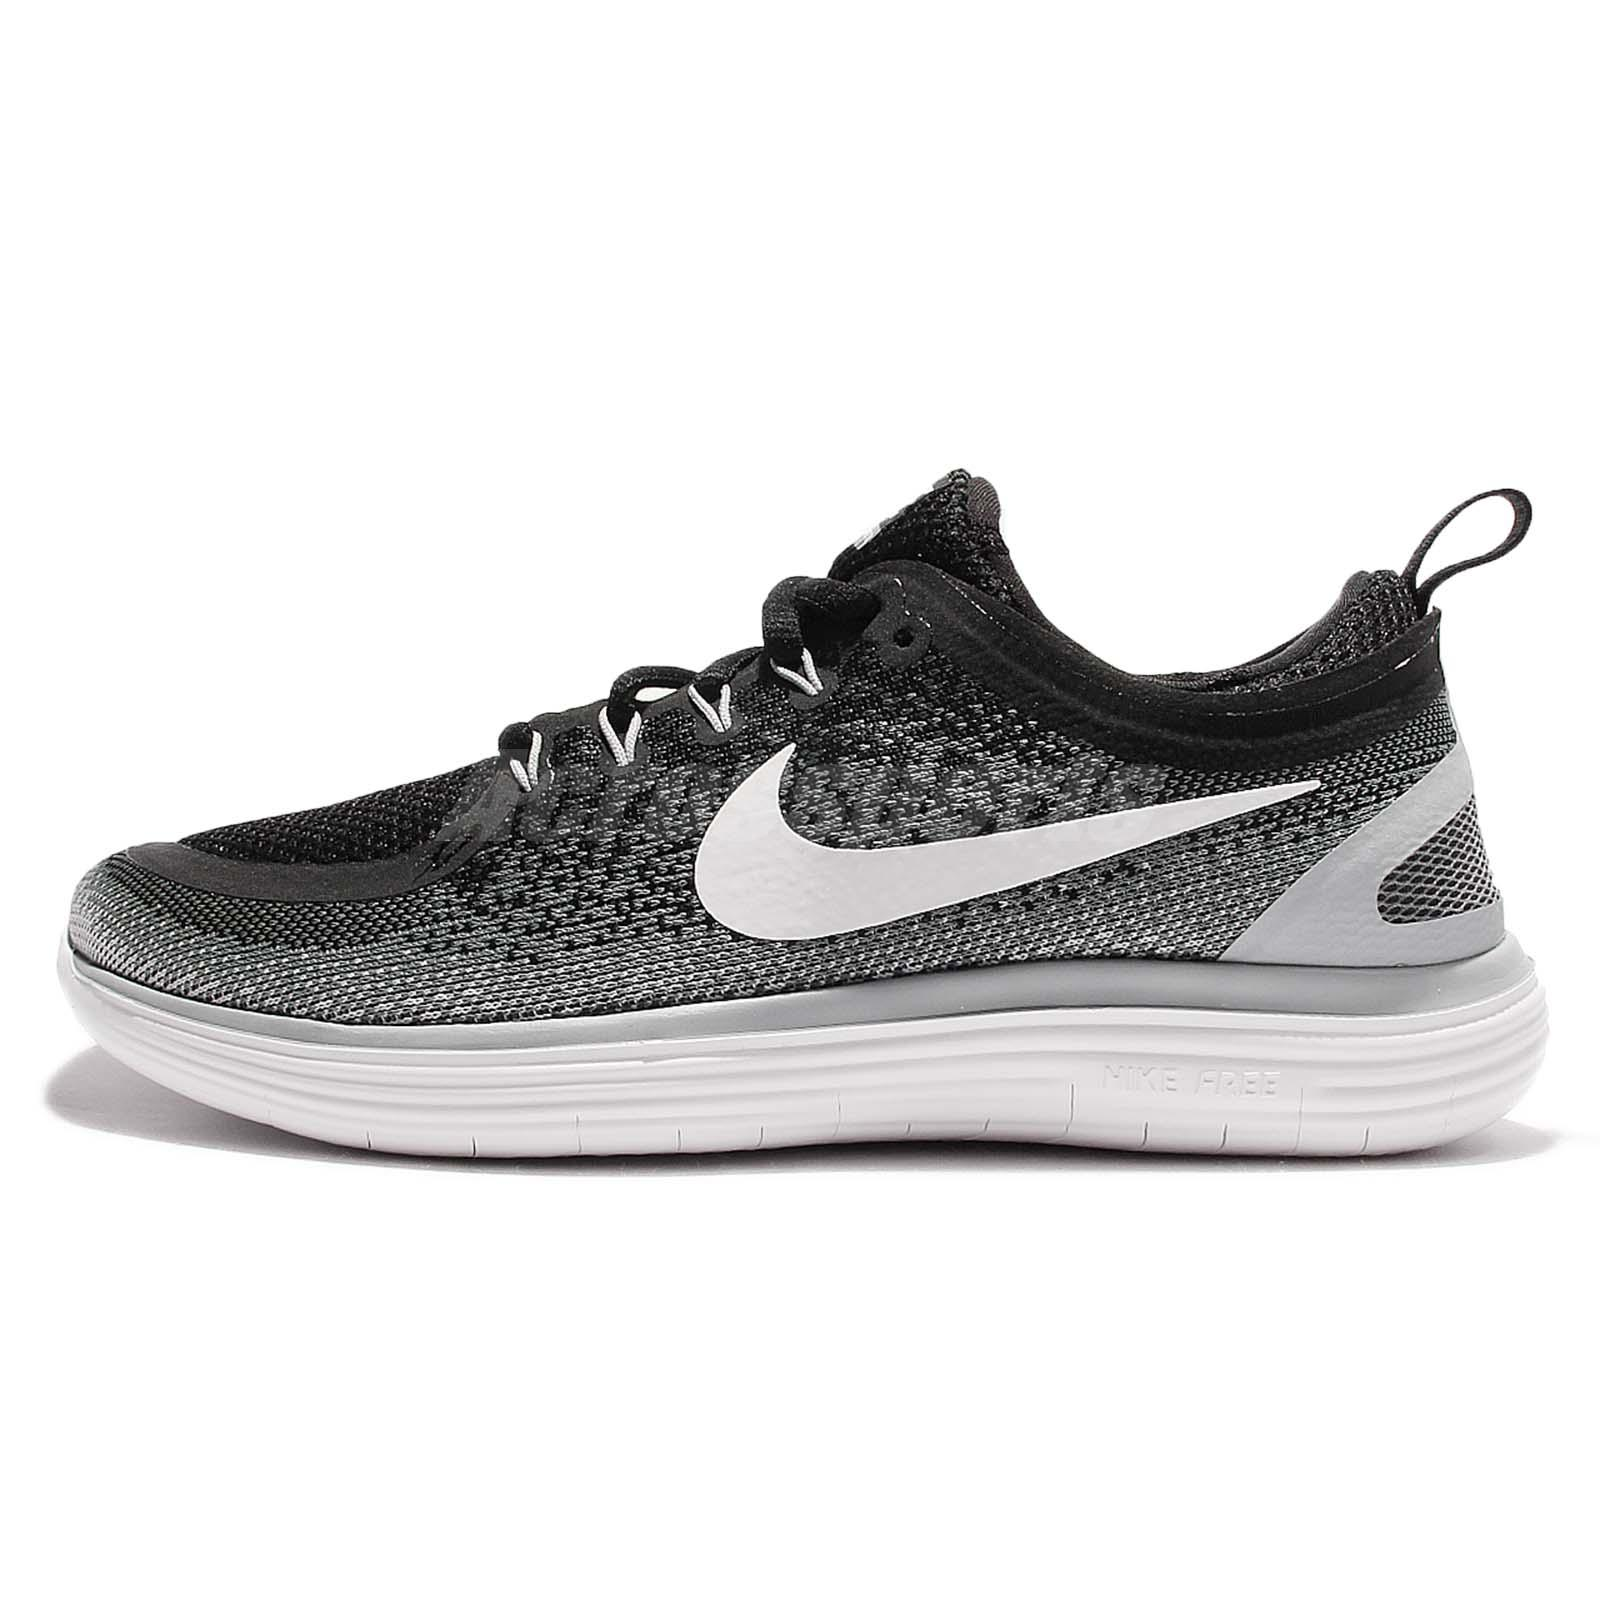 8938a7f4a914 Nike Wmns Free RN Distance 2 Run Black White Women Running Shoes 863776-001